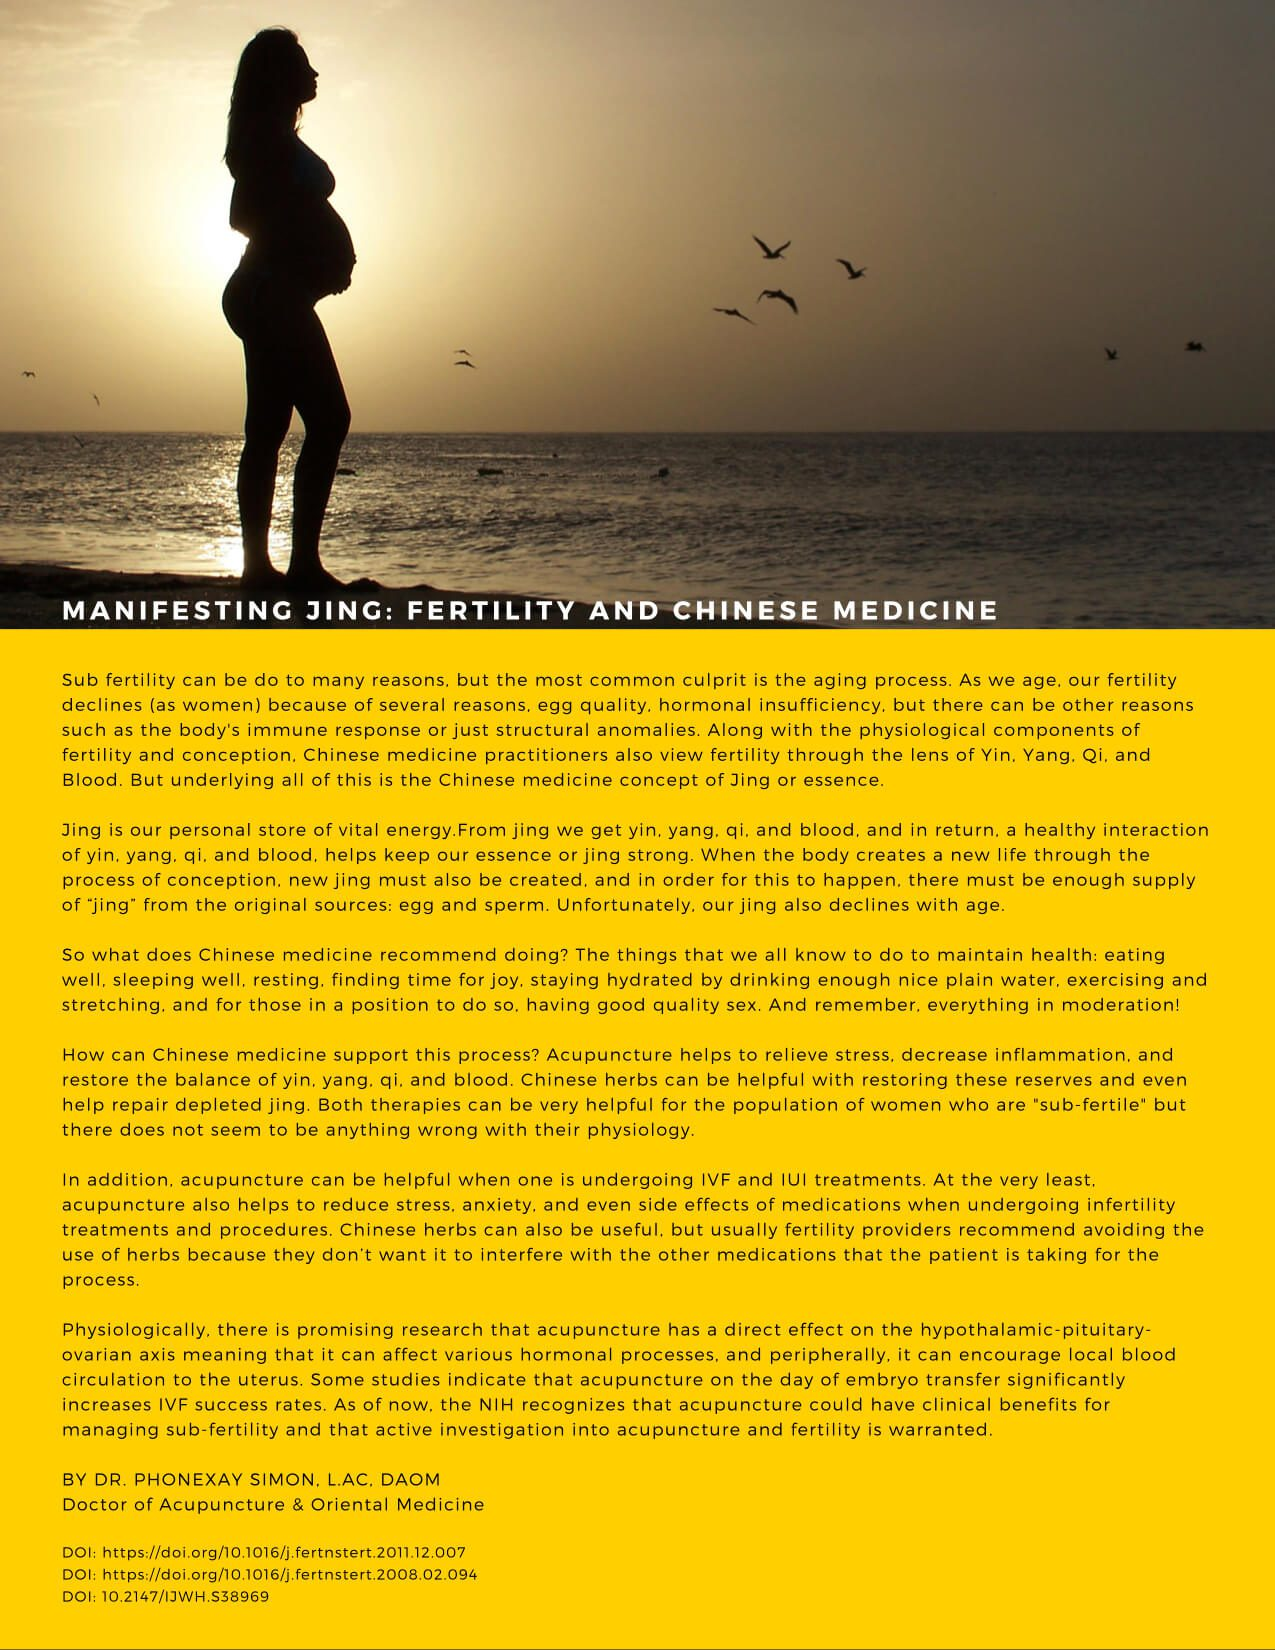 Chinese medicine and Fertility